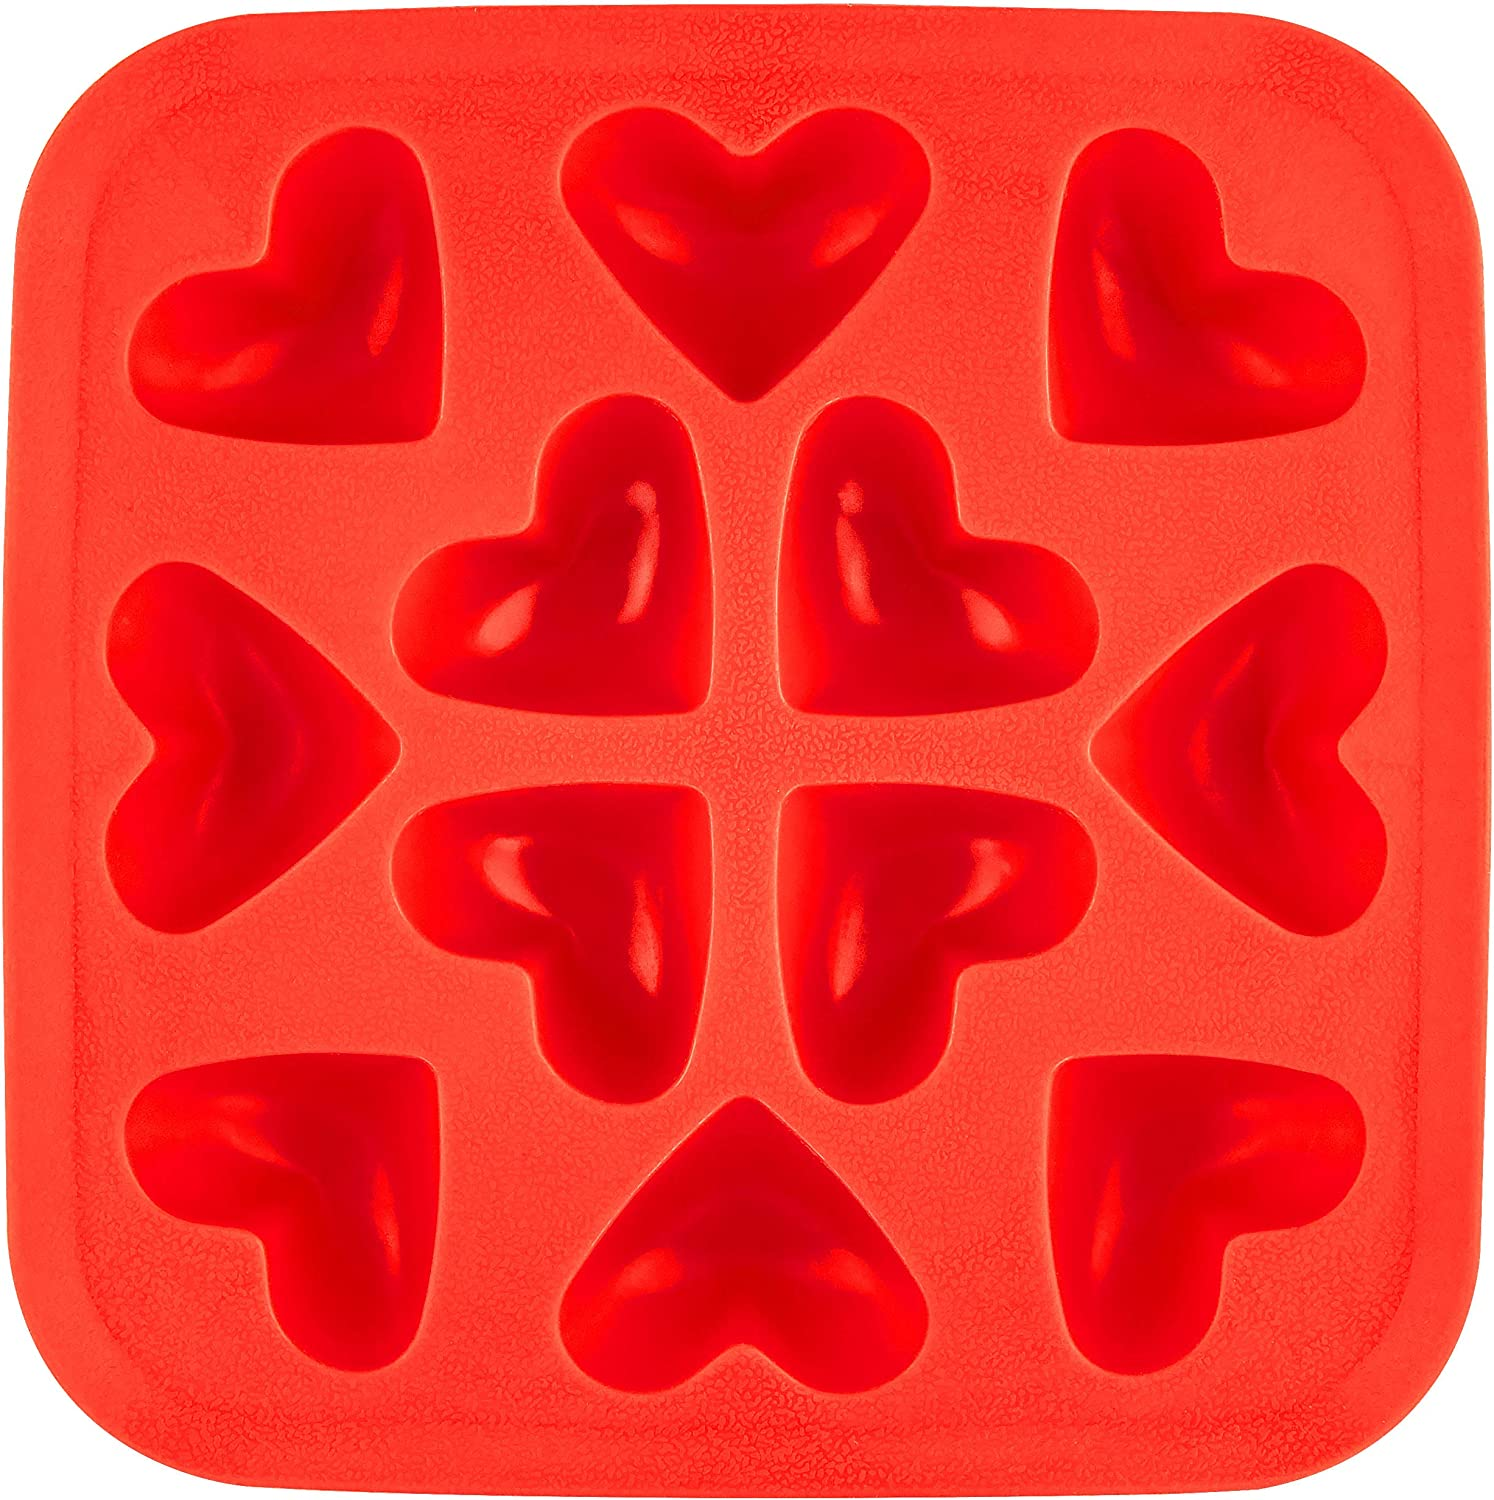 Fairly Odd Novelties Heart Shaped Tray Fun Whimsical Novelty Ice Cube Molds - Perfect for Valentines Day or Weddings, One Size, Red